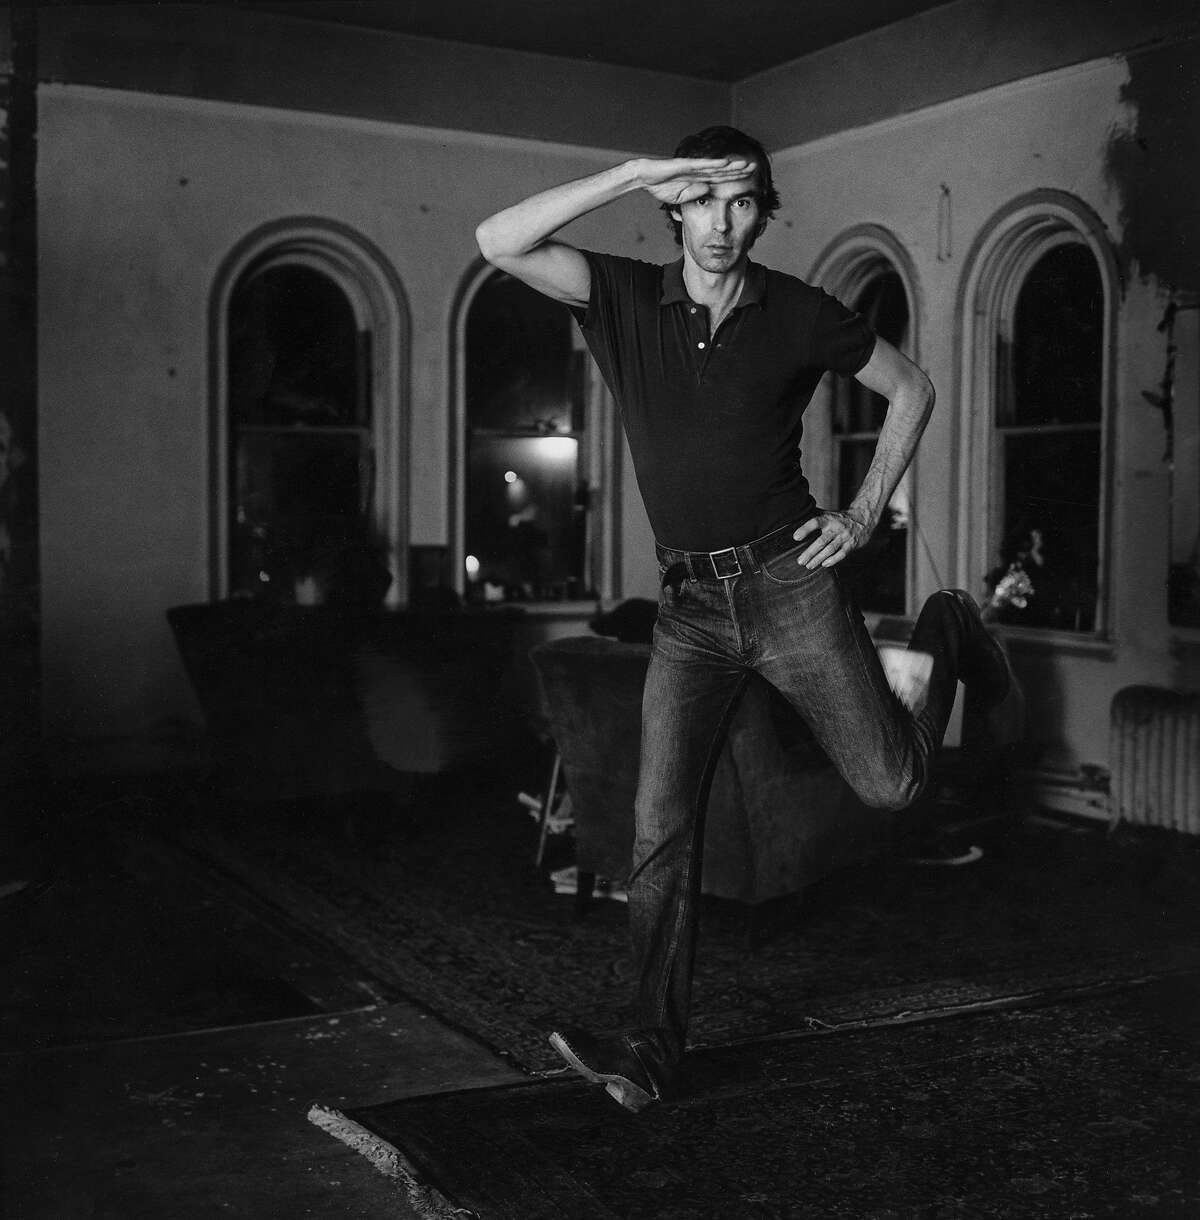 """Peter Hujar strikes a pose in his 1974 photo """"Self-Portrait Jumping (I),"""" which is included in """"Peter Hujar: 21 Pictures"""" through March 5 at Fraenkel Gallery."""